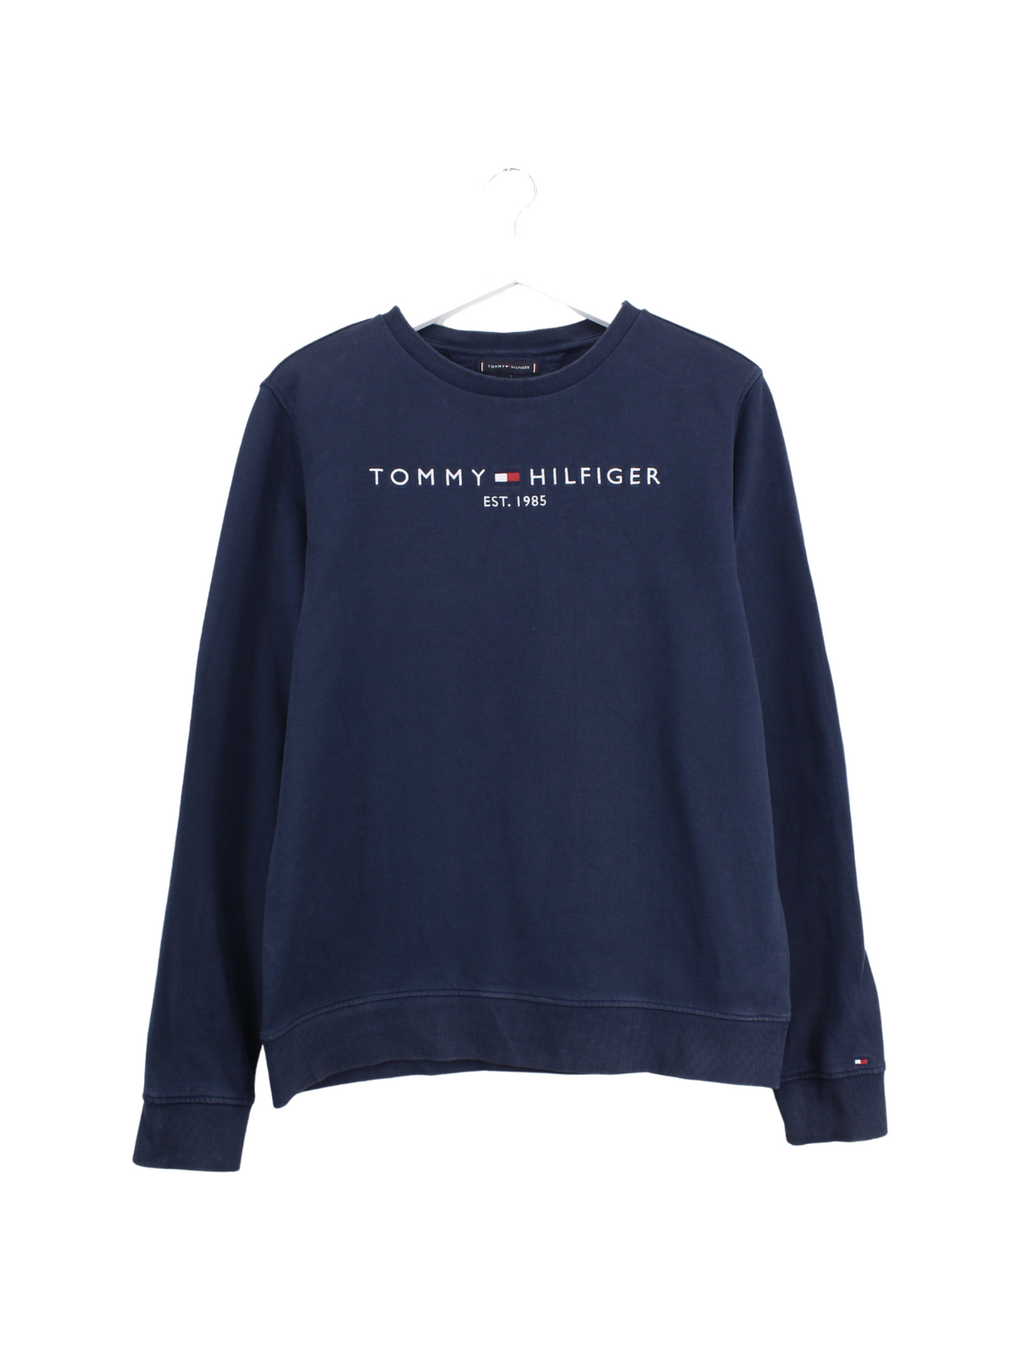 Tommy Hilfiger Sweater Blau S